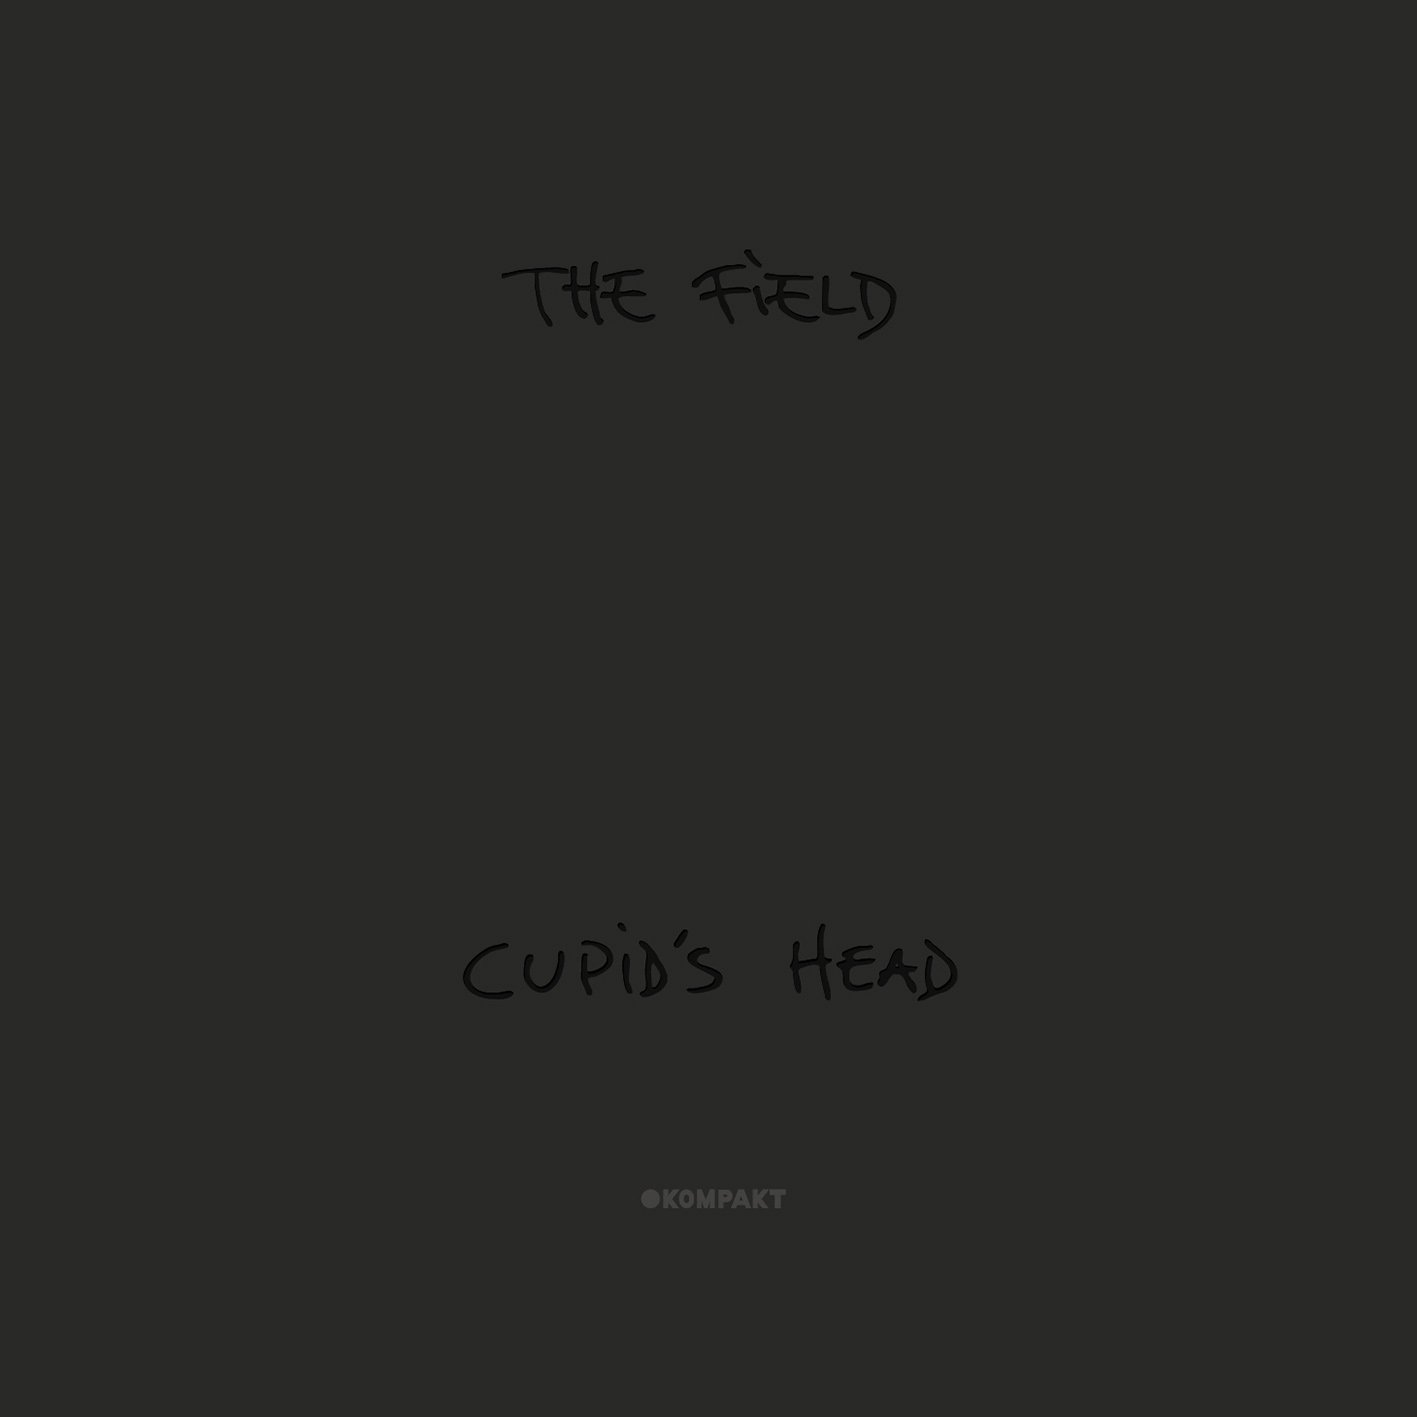 CD : Field - Cupid's Head (CD)